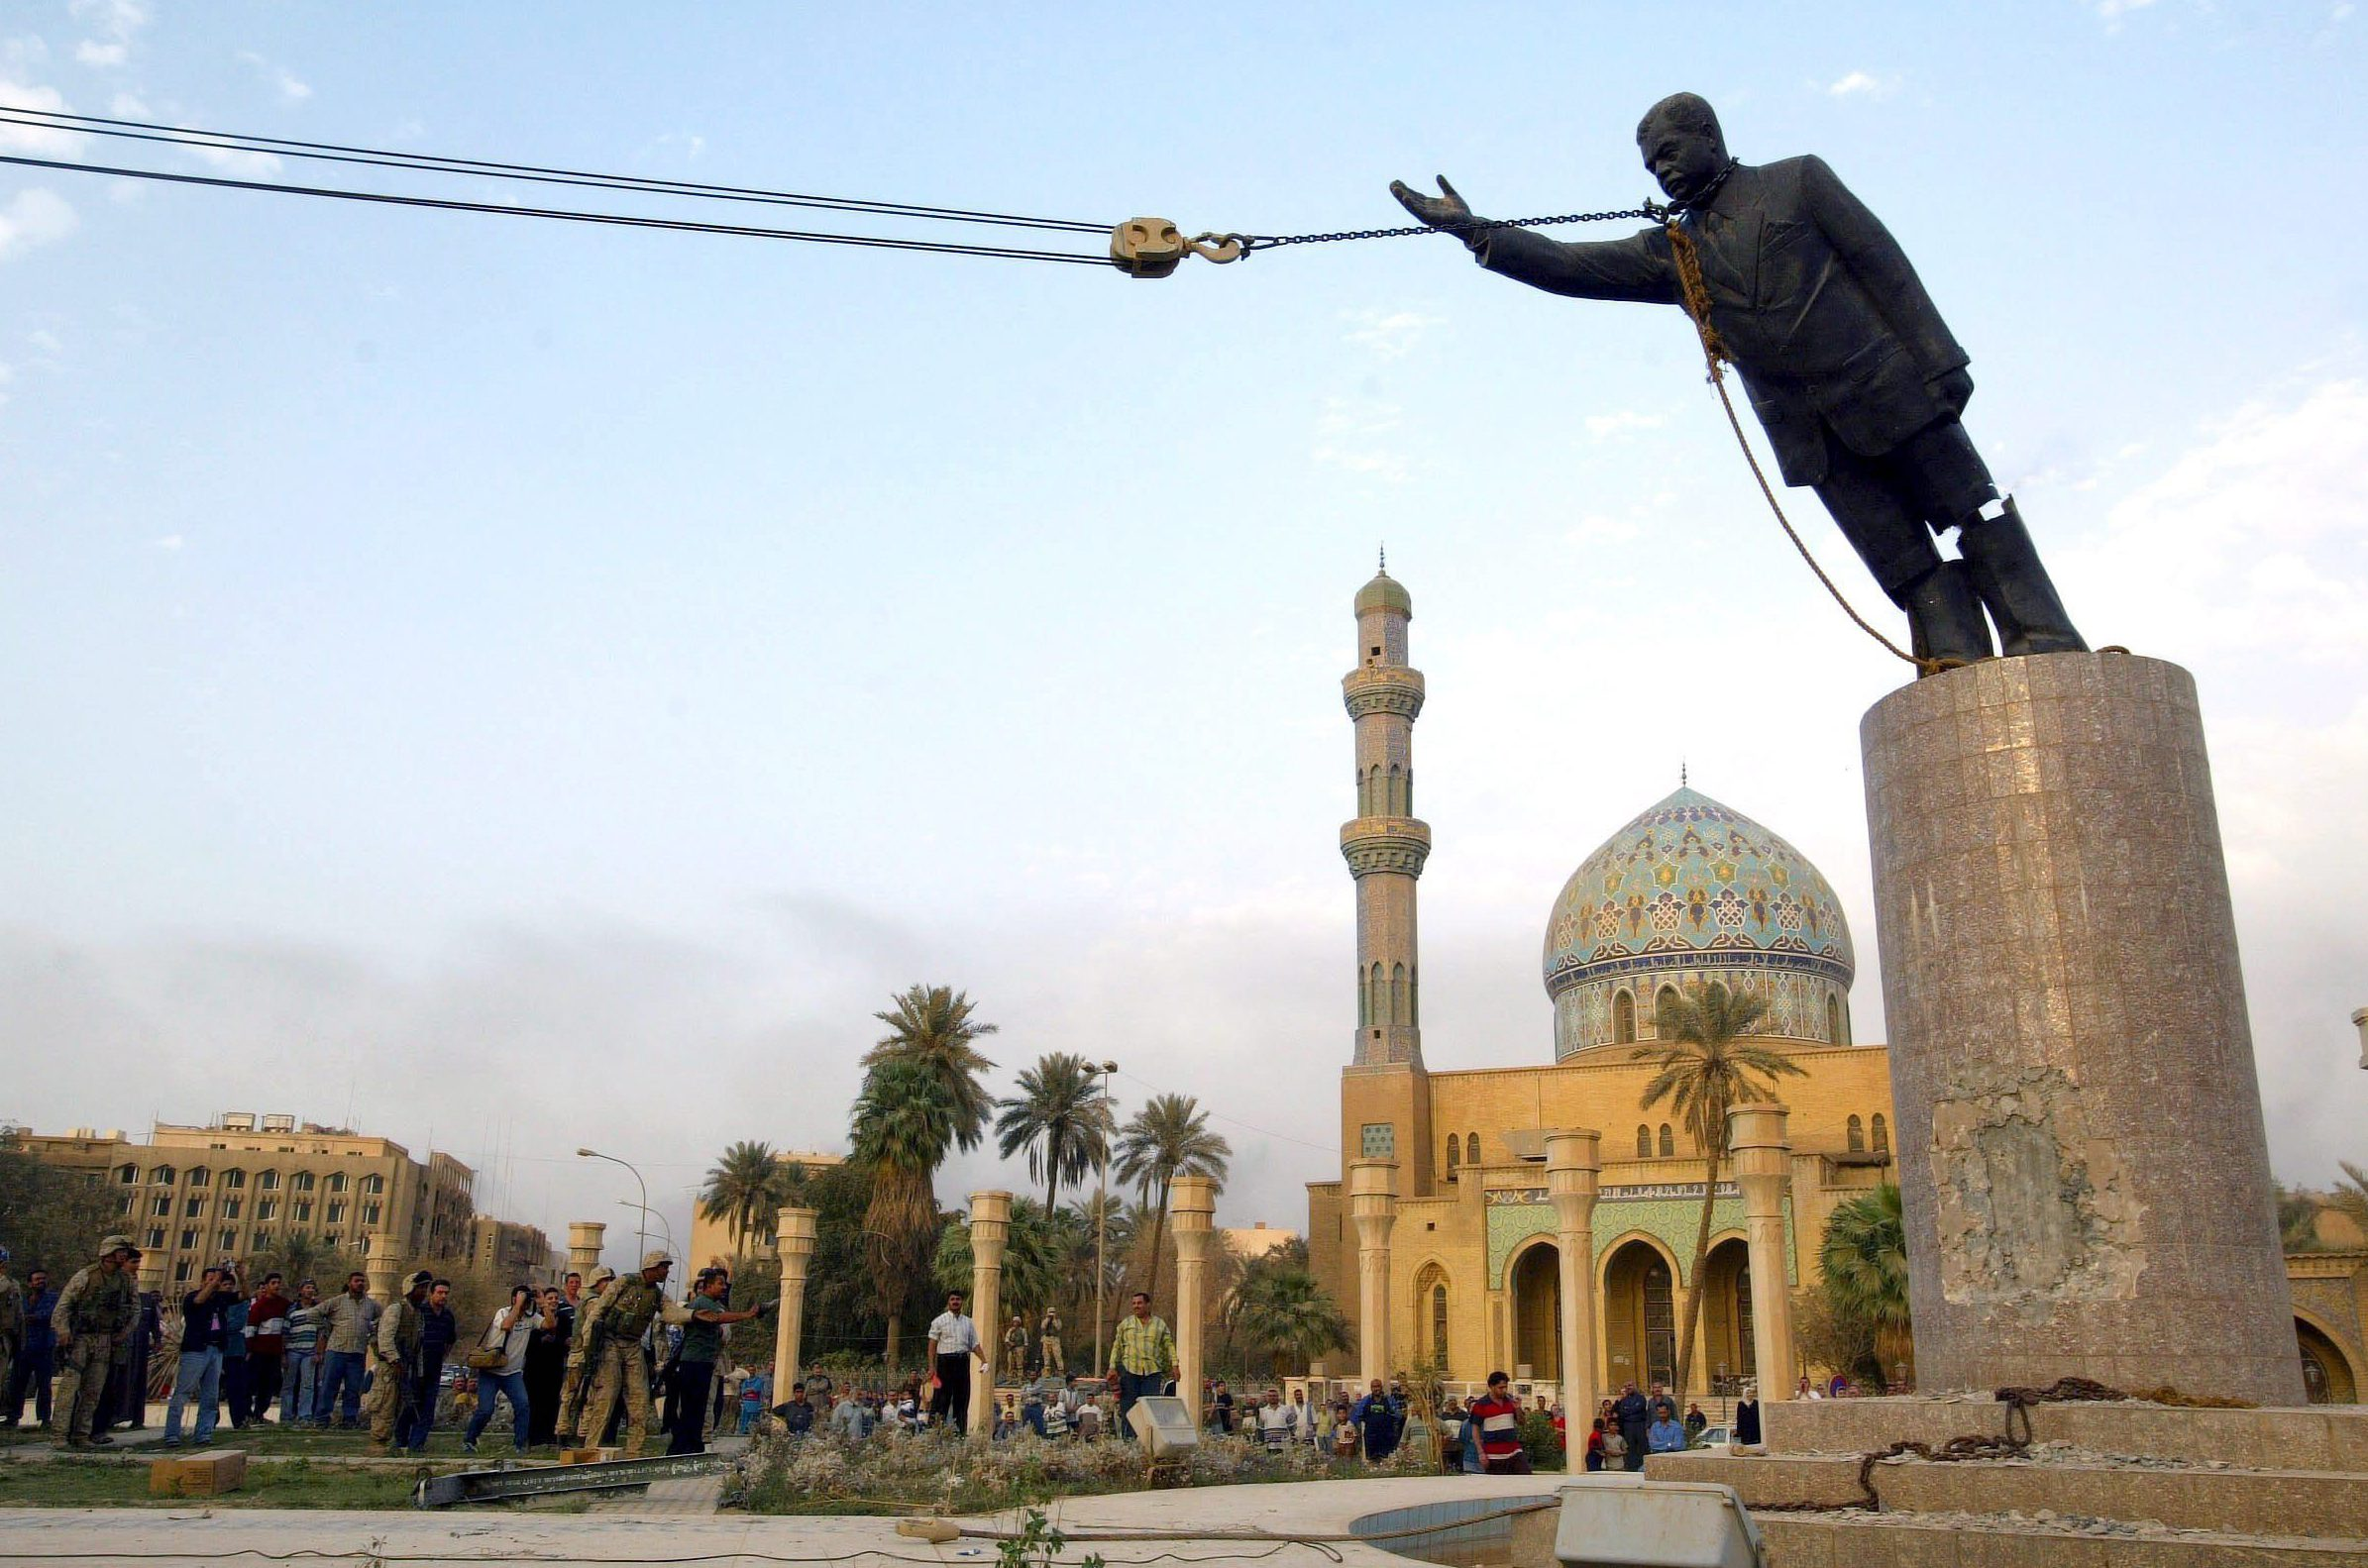 Man who brought down Saddam statue says he regrets it